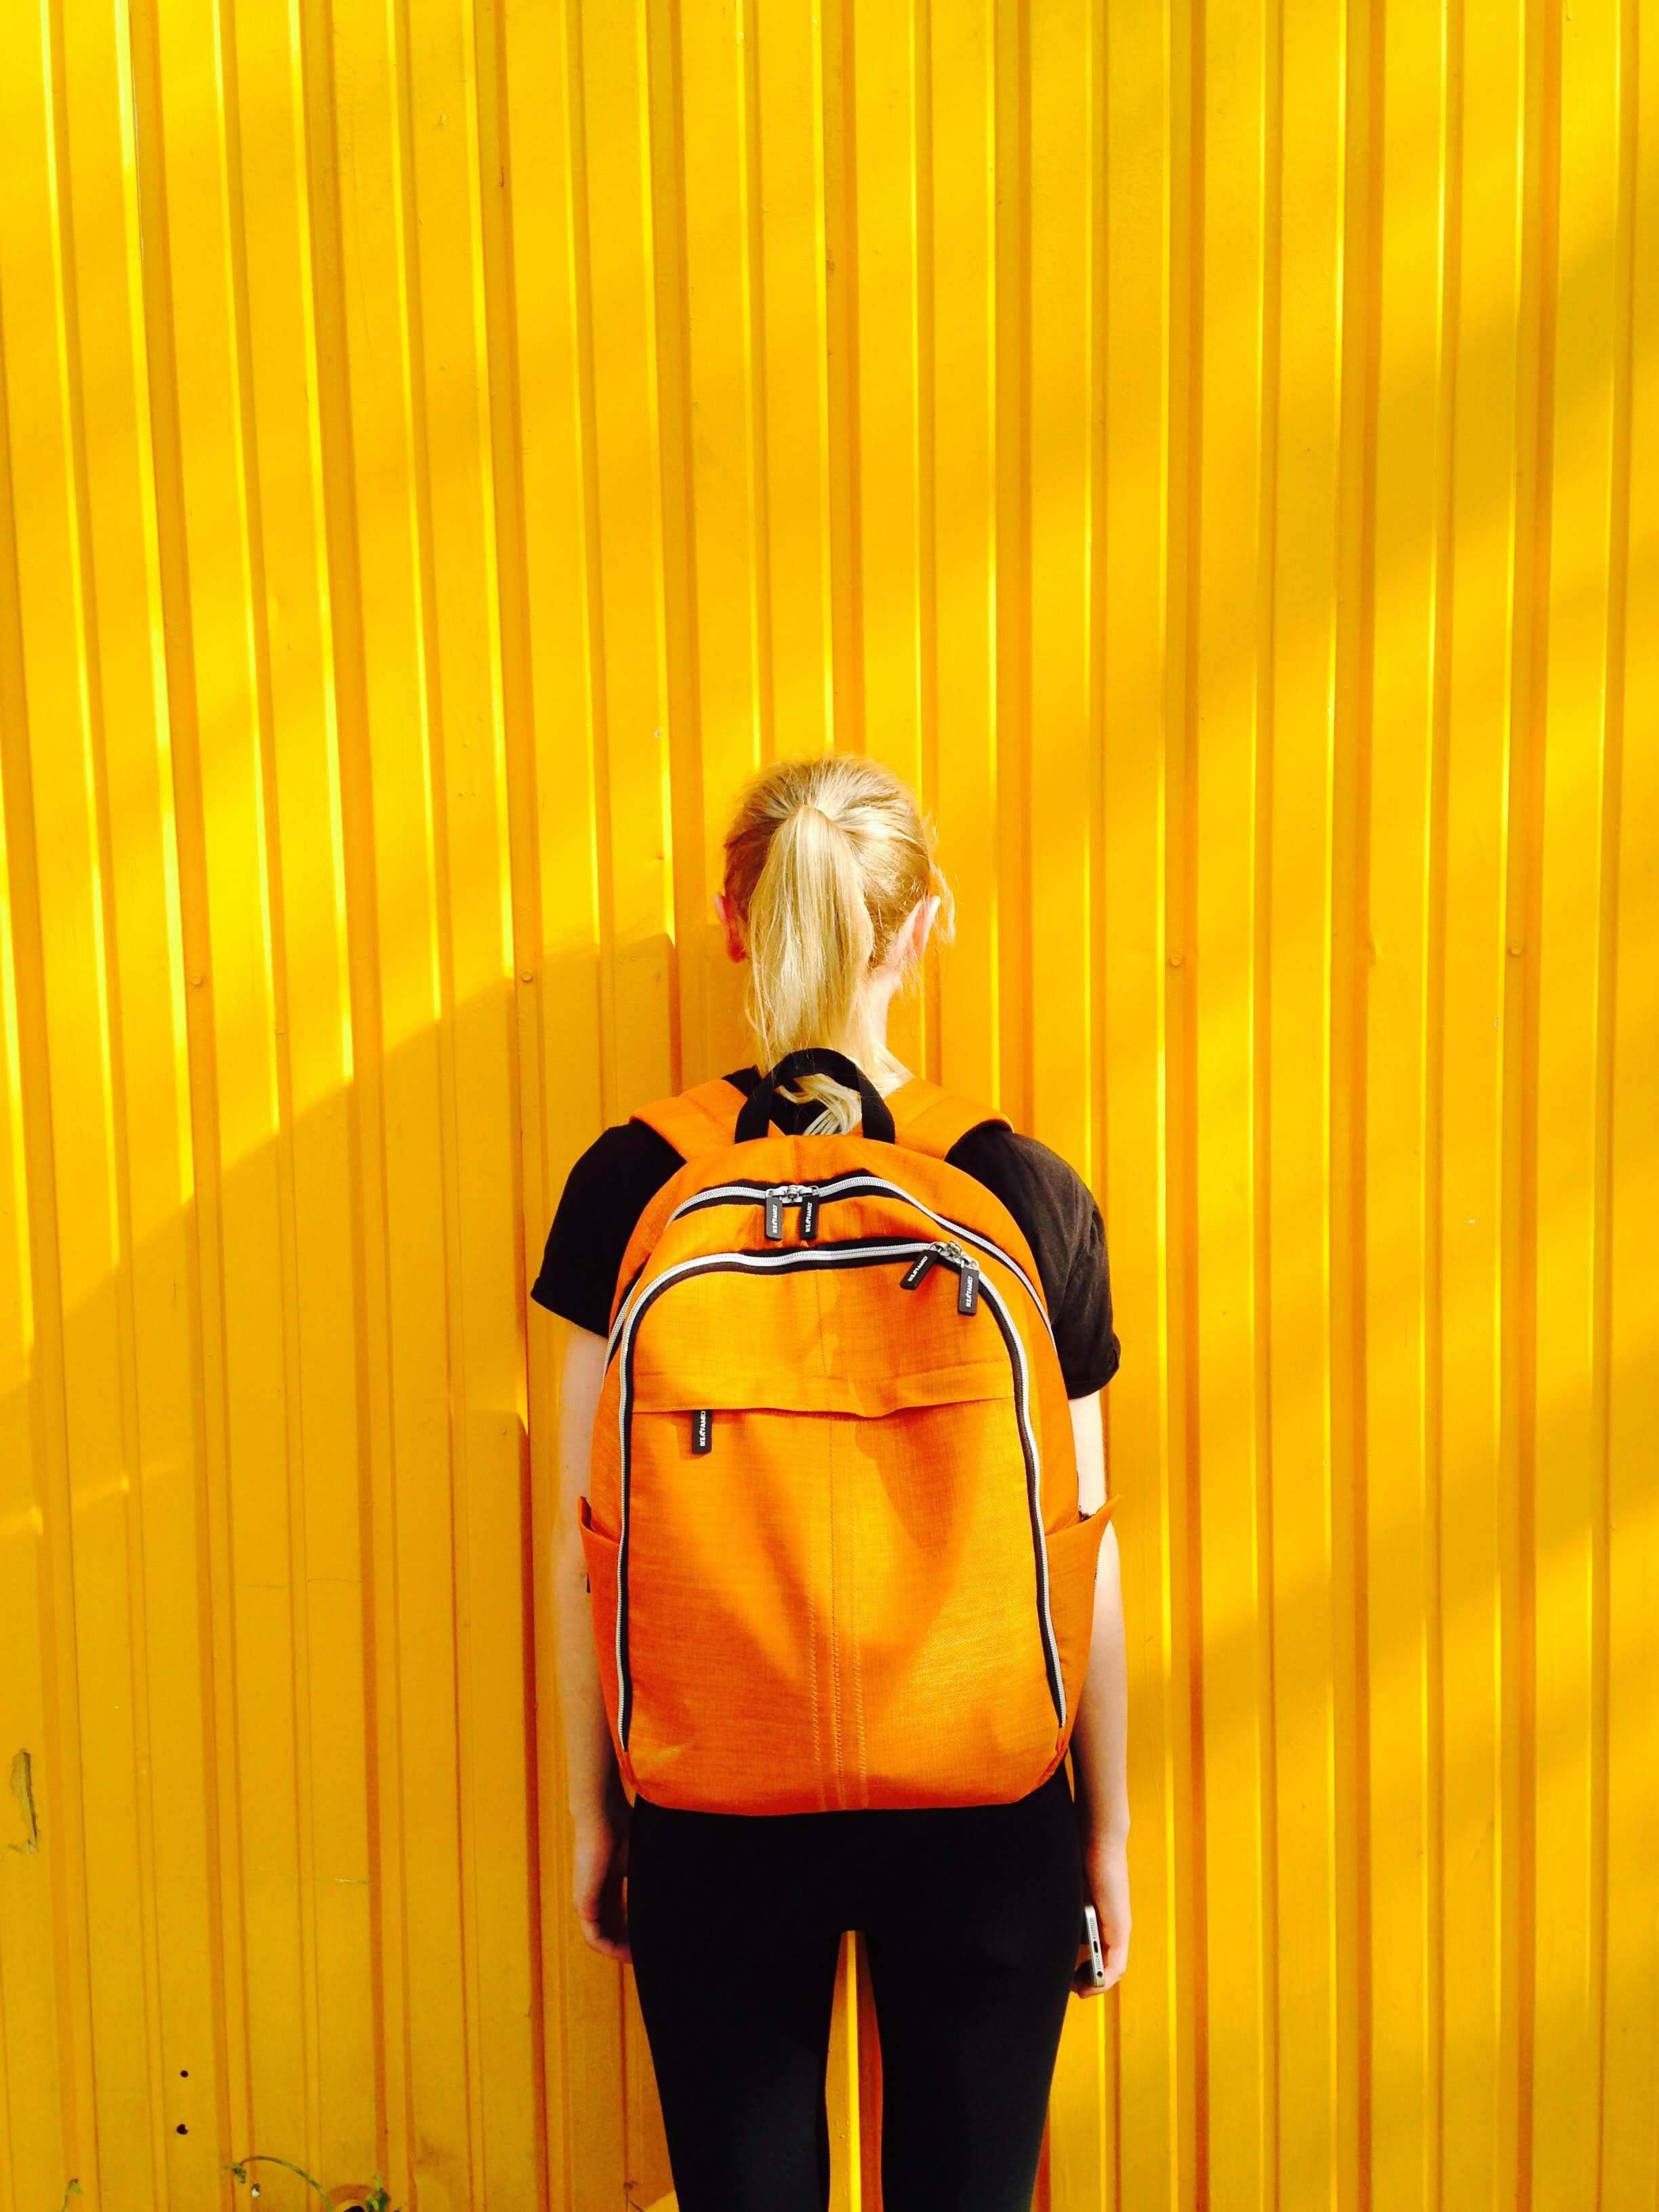 Woman with backpack on facing a yellow wall